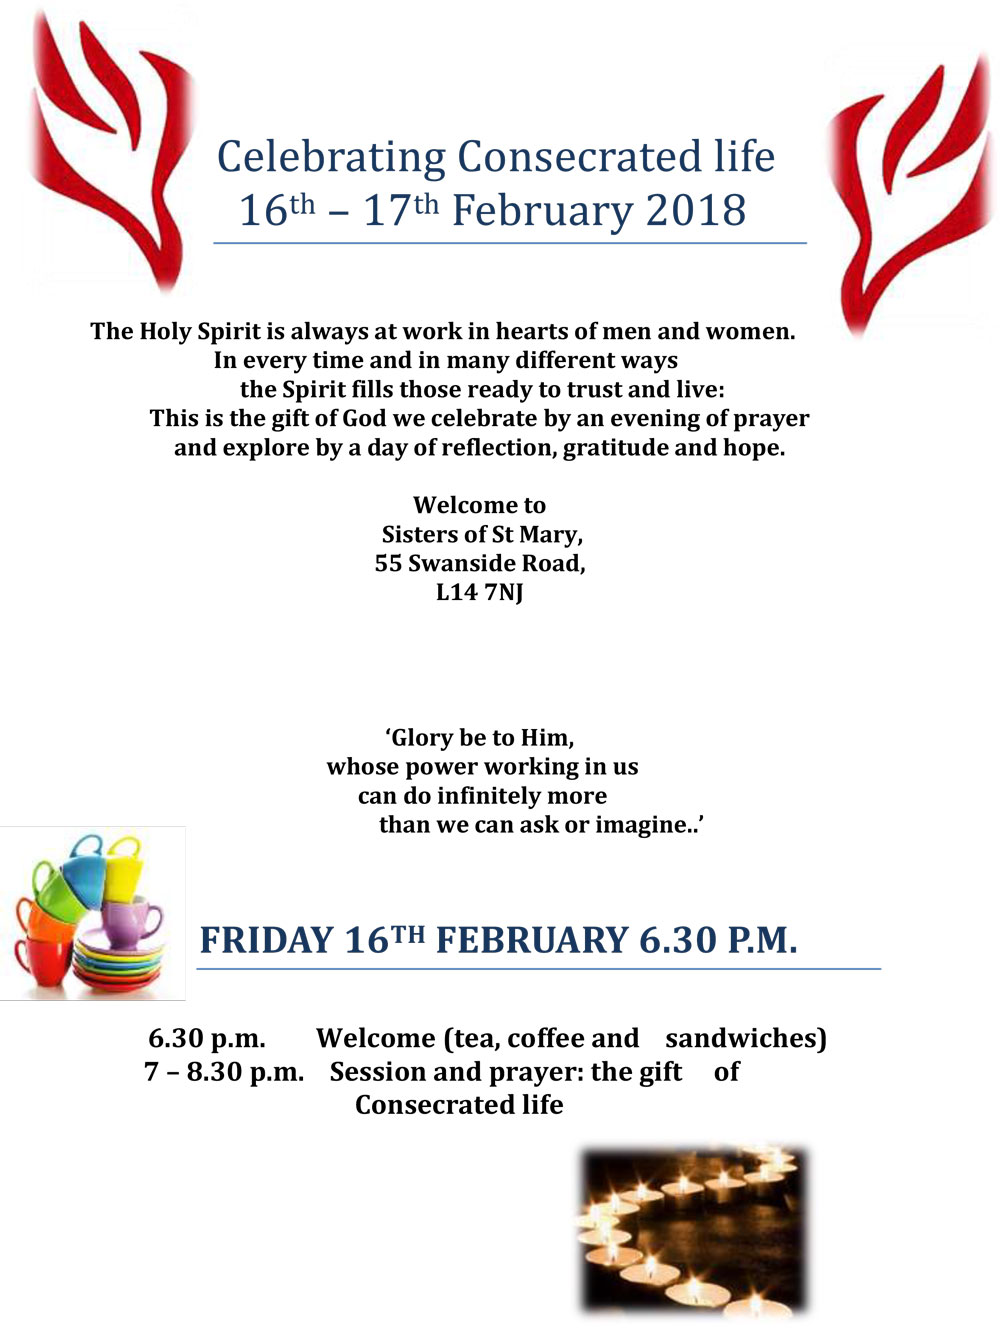 Celebrating Consecrated life 16 17th February 2018 1